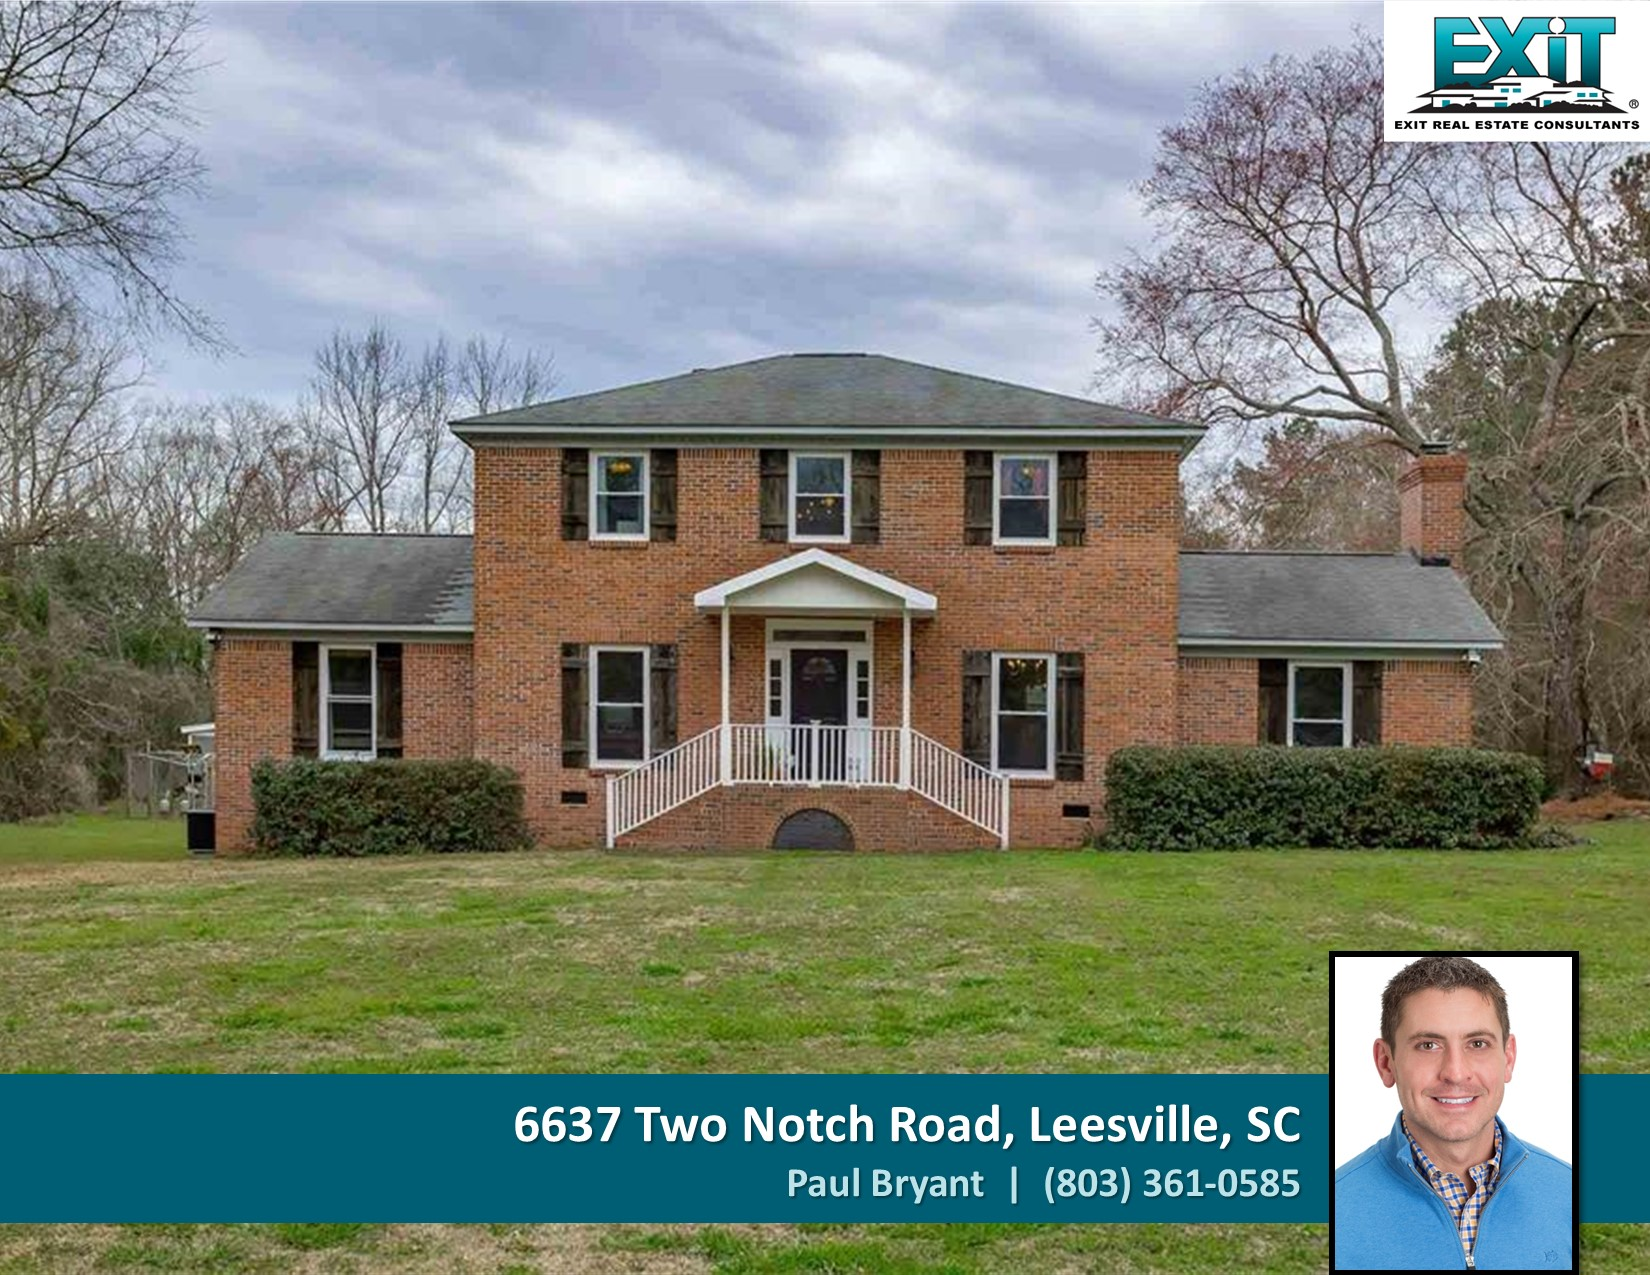 Just listed in Leesville